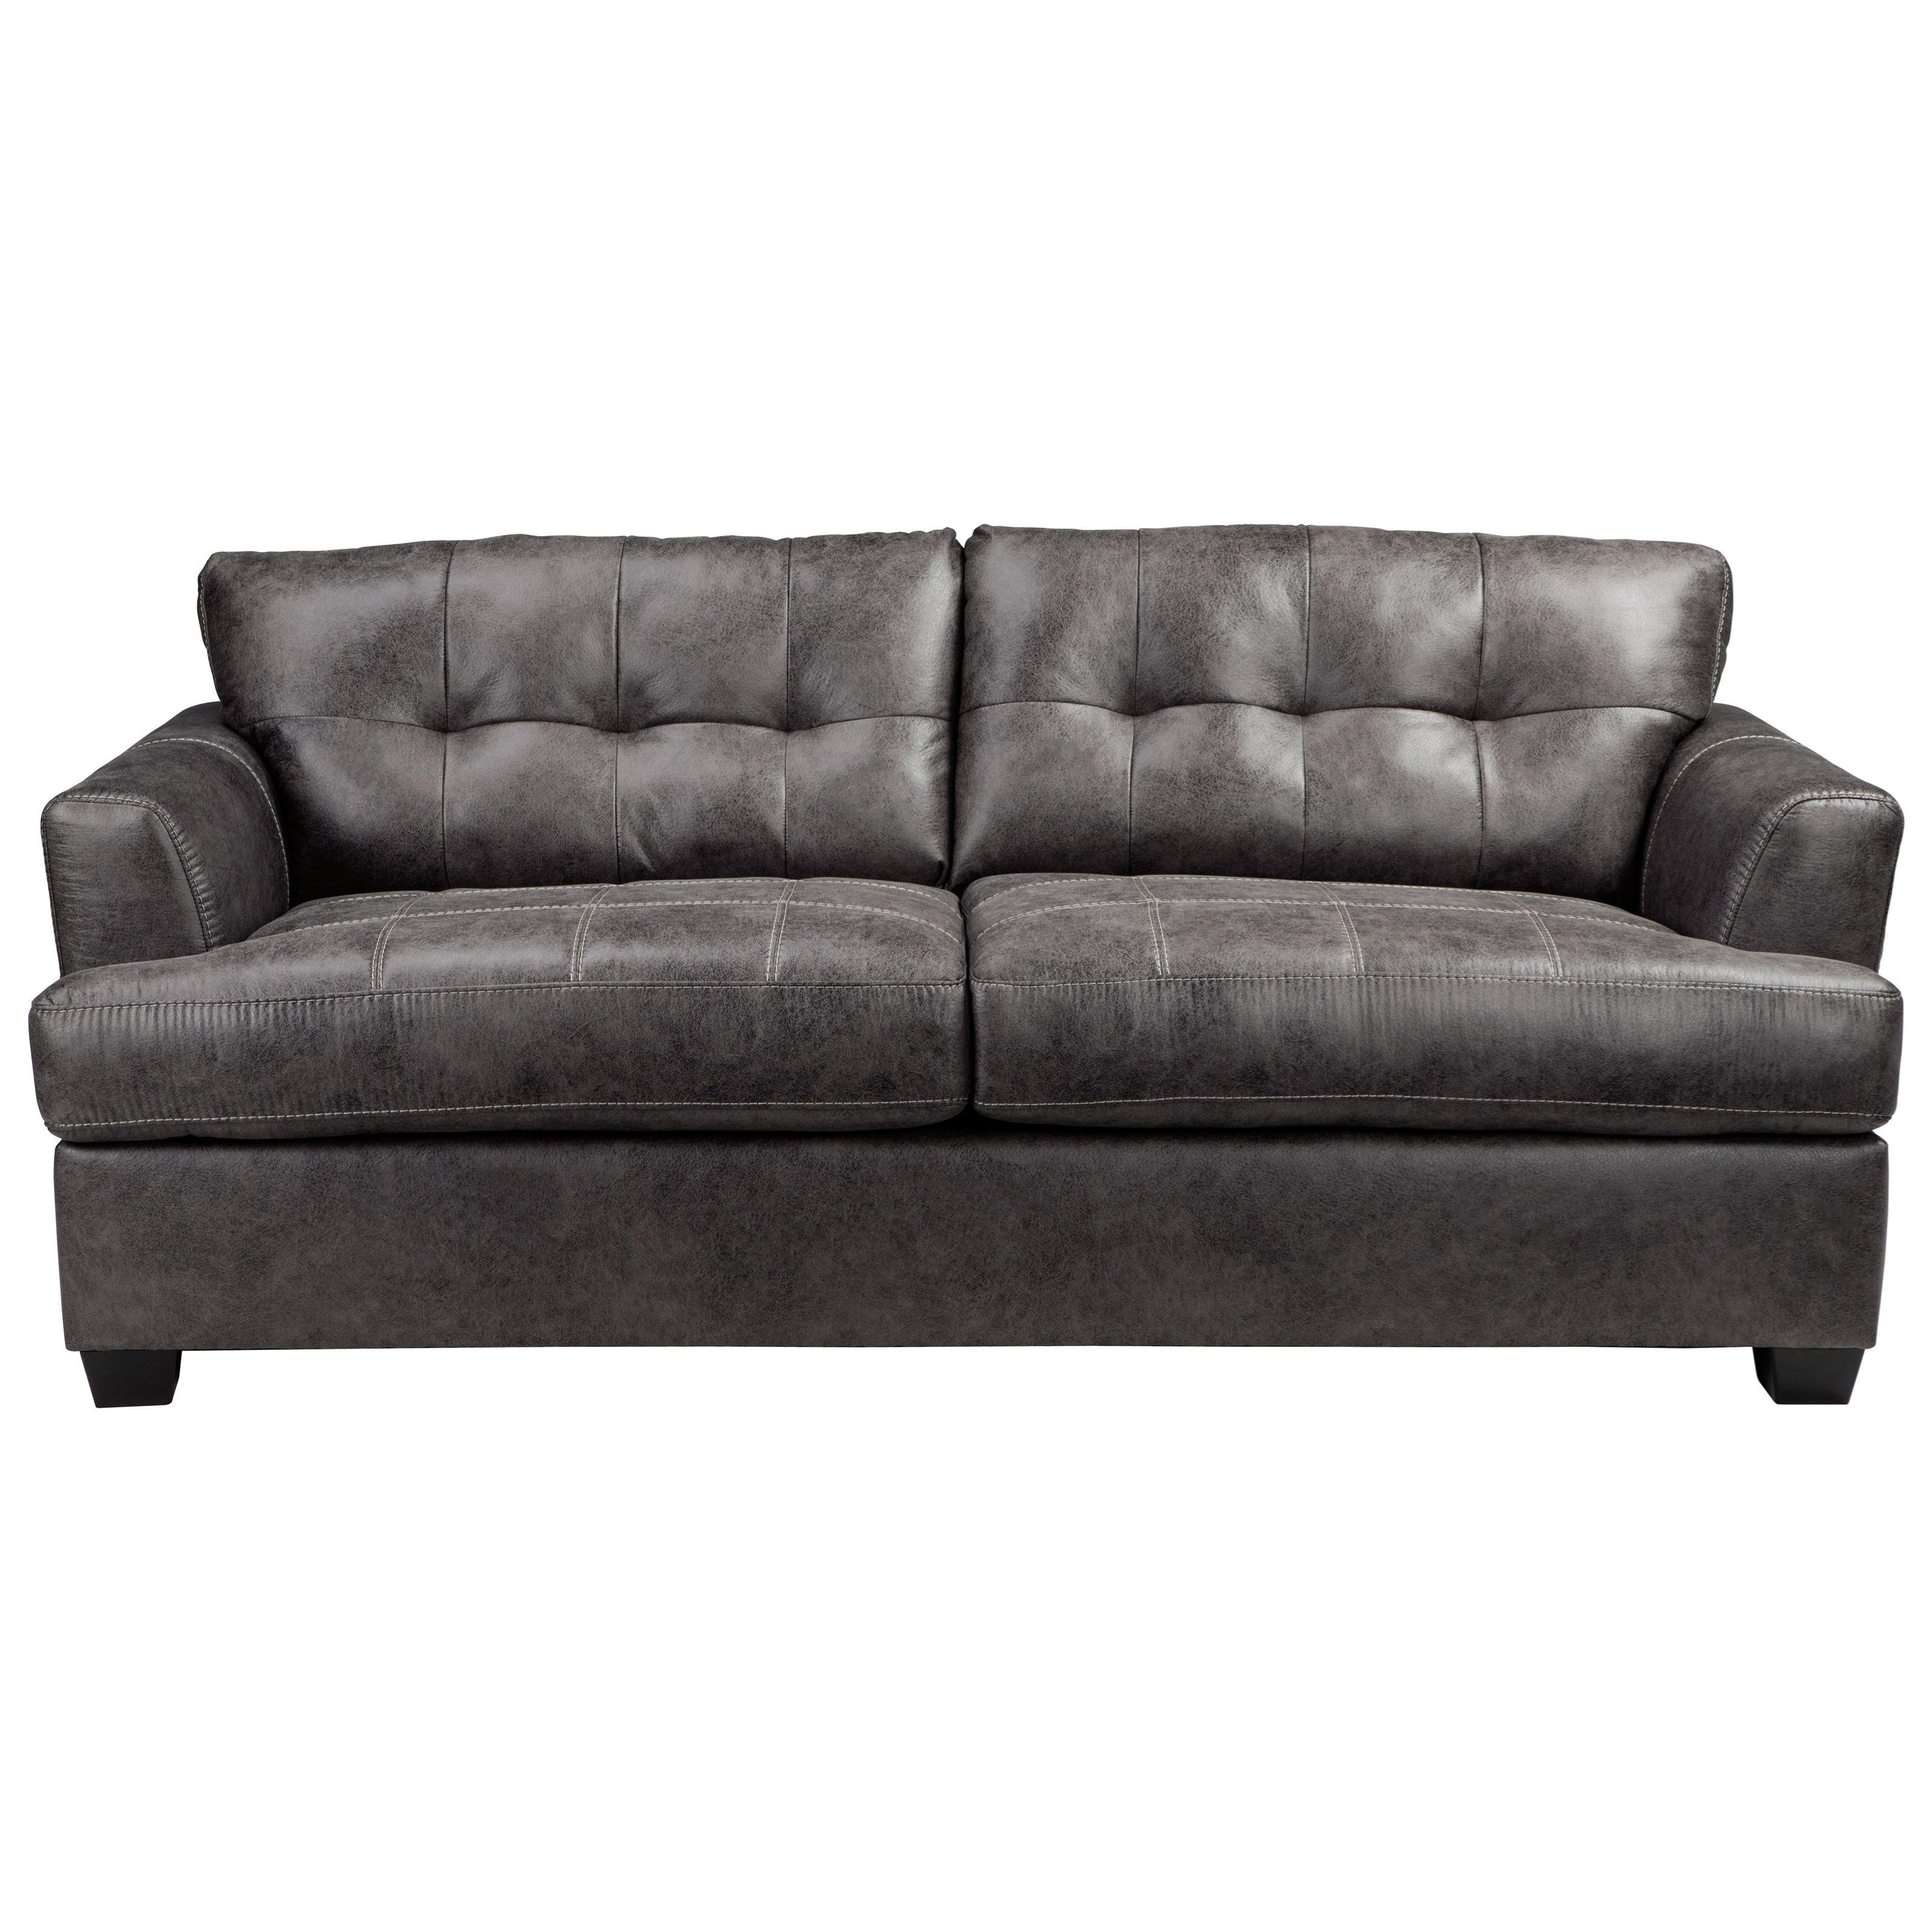 Benchcraft inmon 6580739 faux leather queen sofa sleeper for Tufted leather sleeper sofa